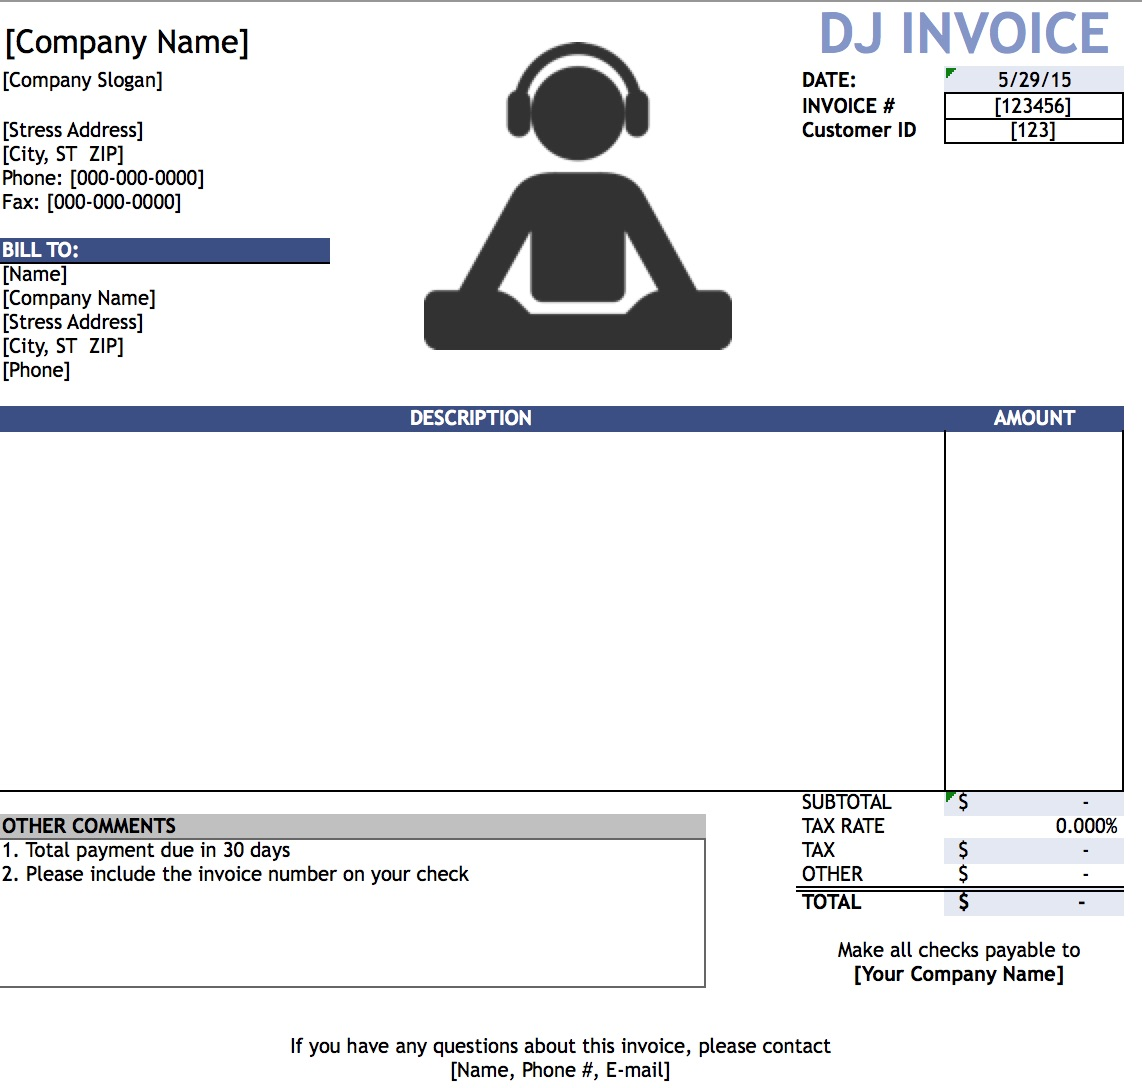 Free DJ Disc Jockey Invoice Template Excel PDF Word Doc - Free invoice pdf template for service business